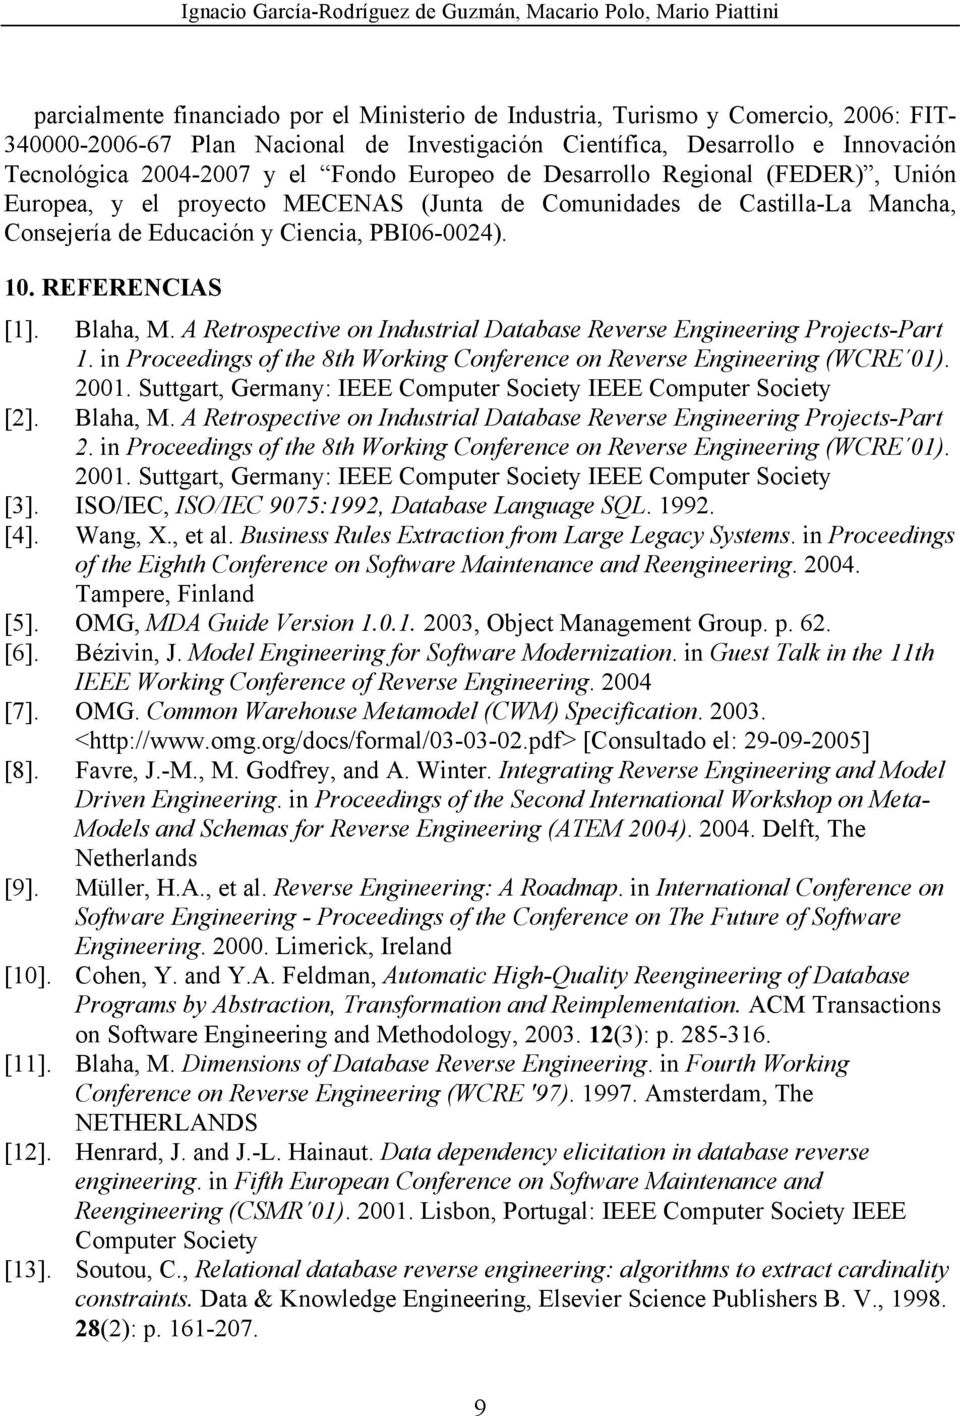 Blaha, M. A Retrospective on Industrial Database Reverse Engineering Projects-Part 1. in Proceedings of the 8th Working Conference on Reverse Engineering (WCRE 01). 2001.